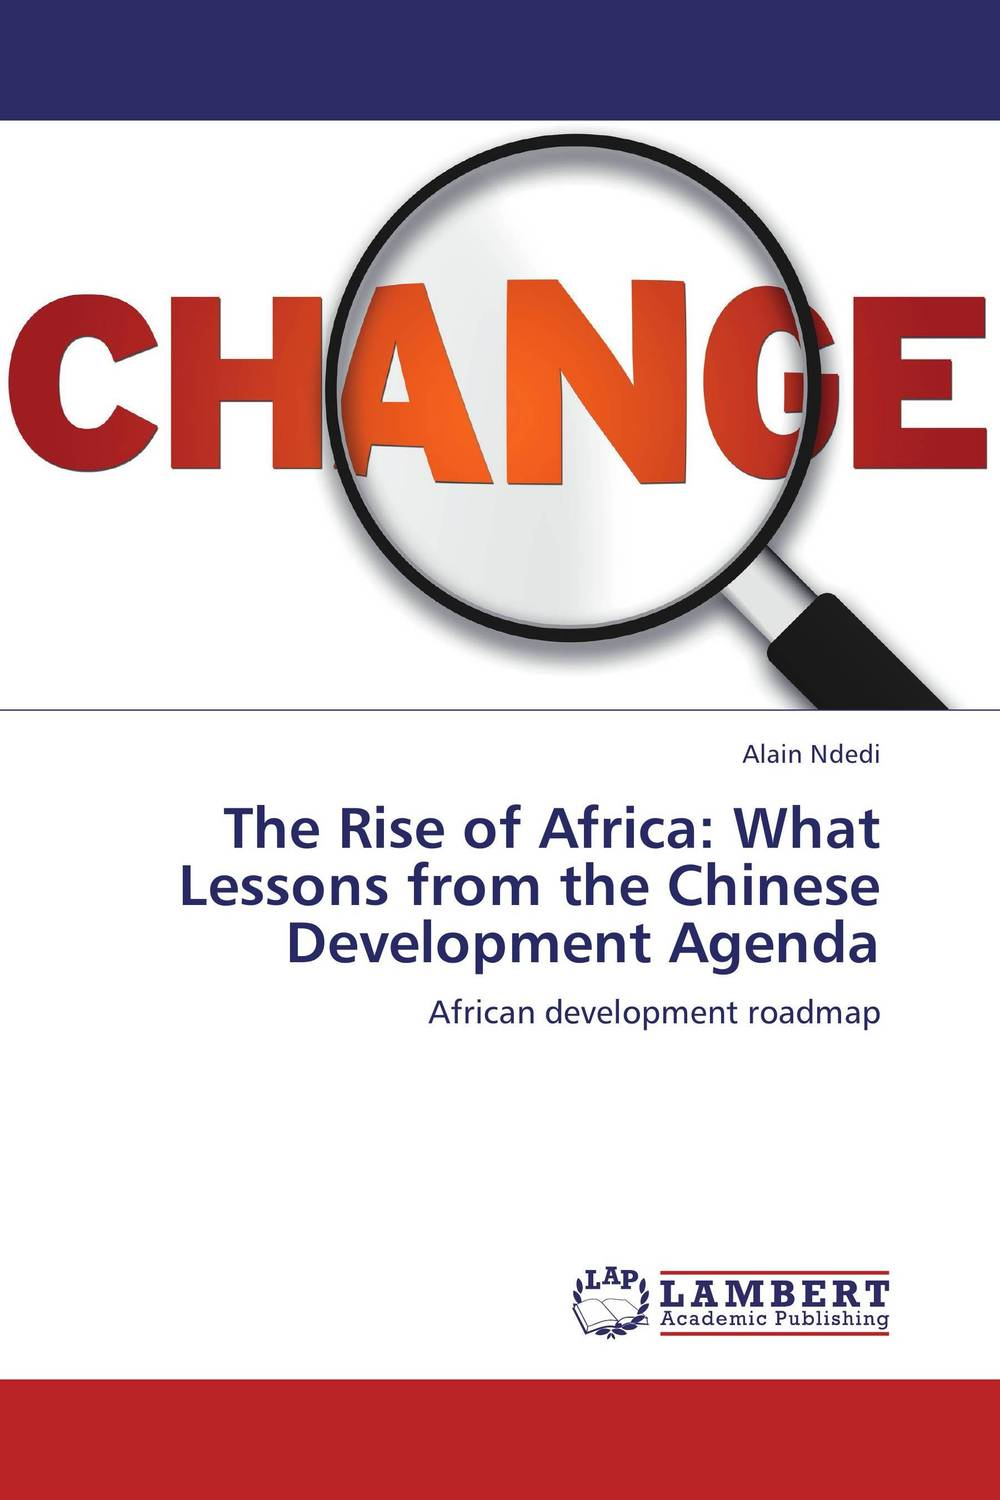 The Rise of Africa: What Lessons from the Chinese Development Agenda adam schwab pigs at the trough lessons from australia s decade of corporate greed